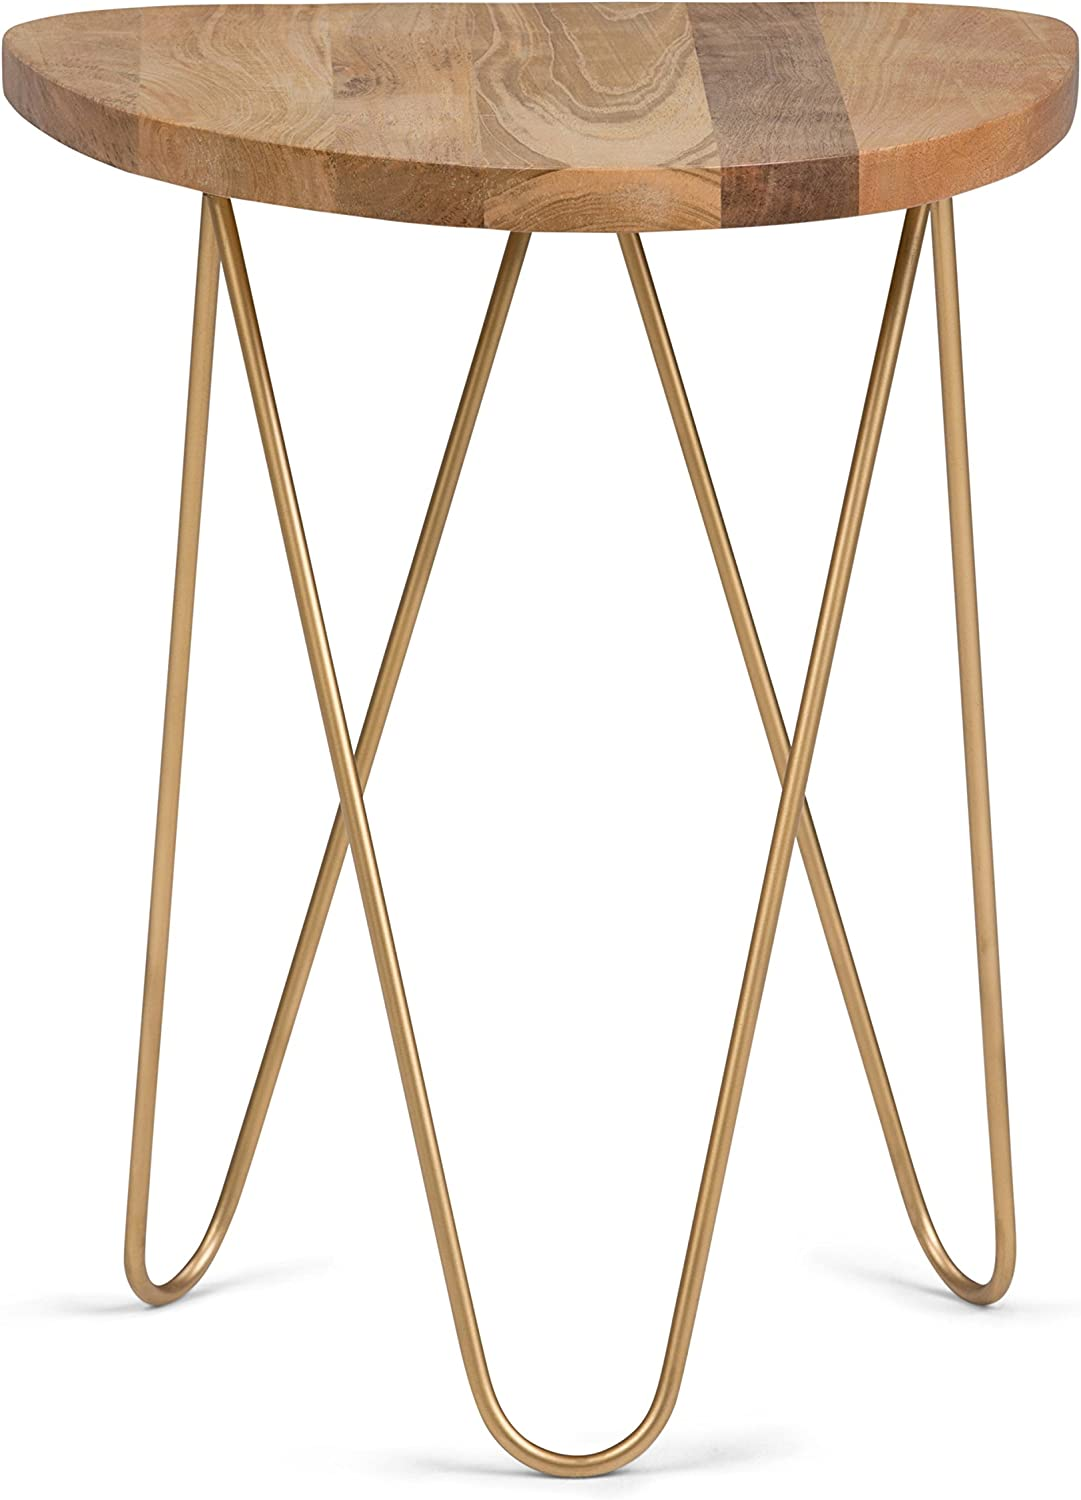 Simpli Home Patrice Metal Wood Accent Table, Natural and gold